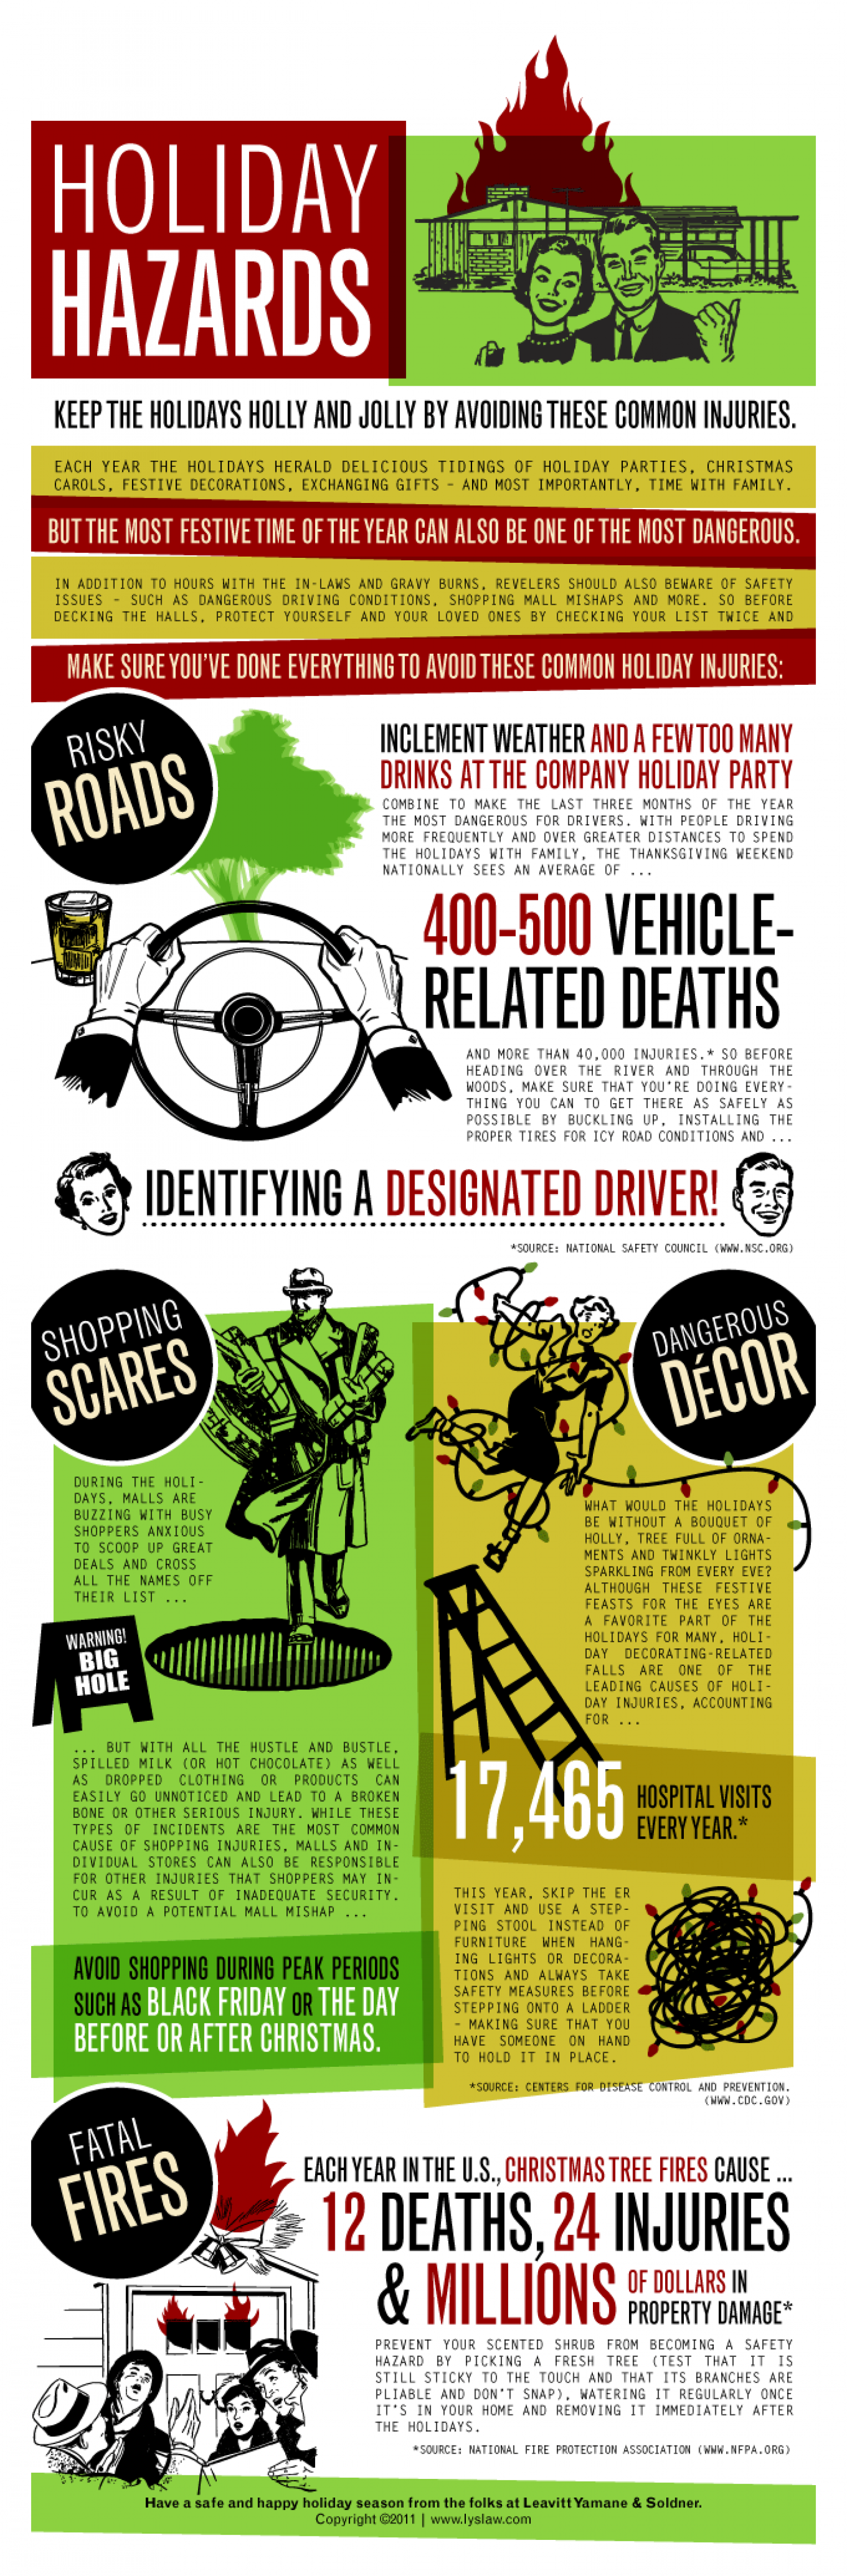 Holiday Hazards Infographic